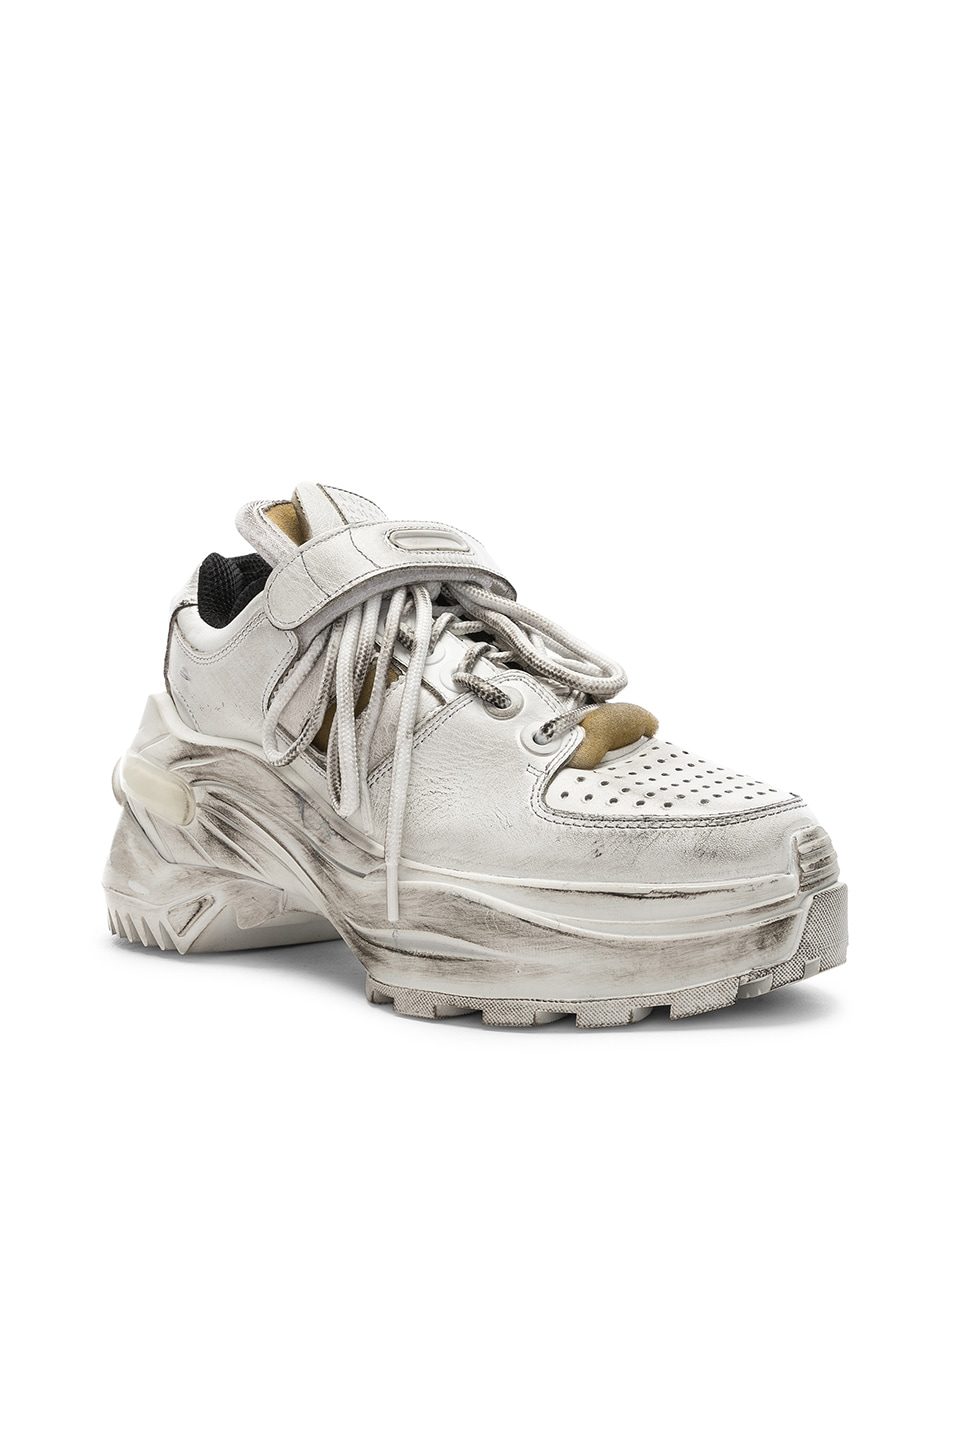 Image 2 of Maison Margiela Leather Sneakers in White & Black Raven